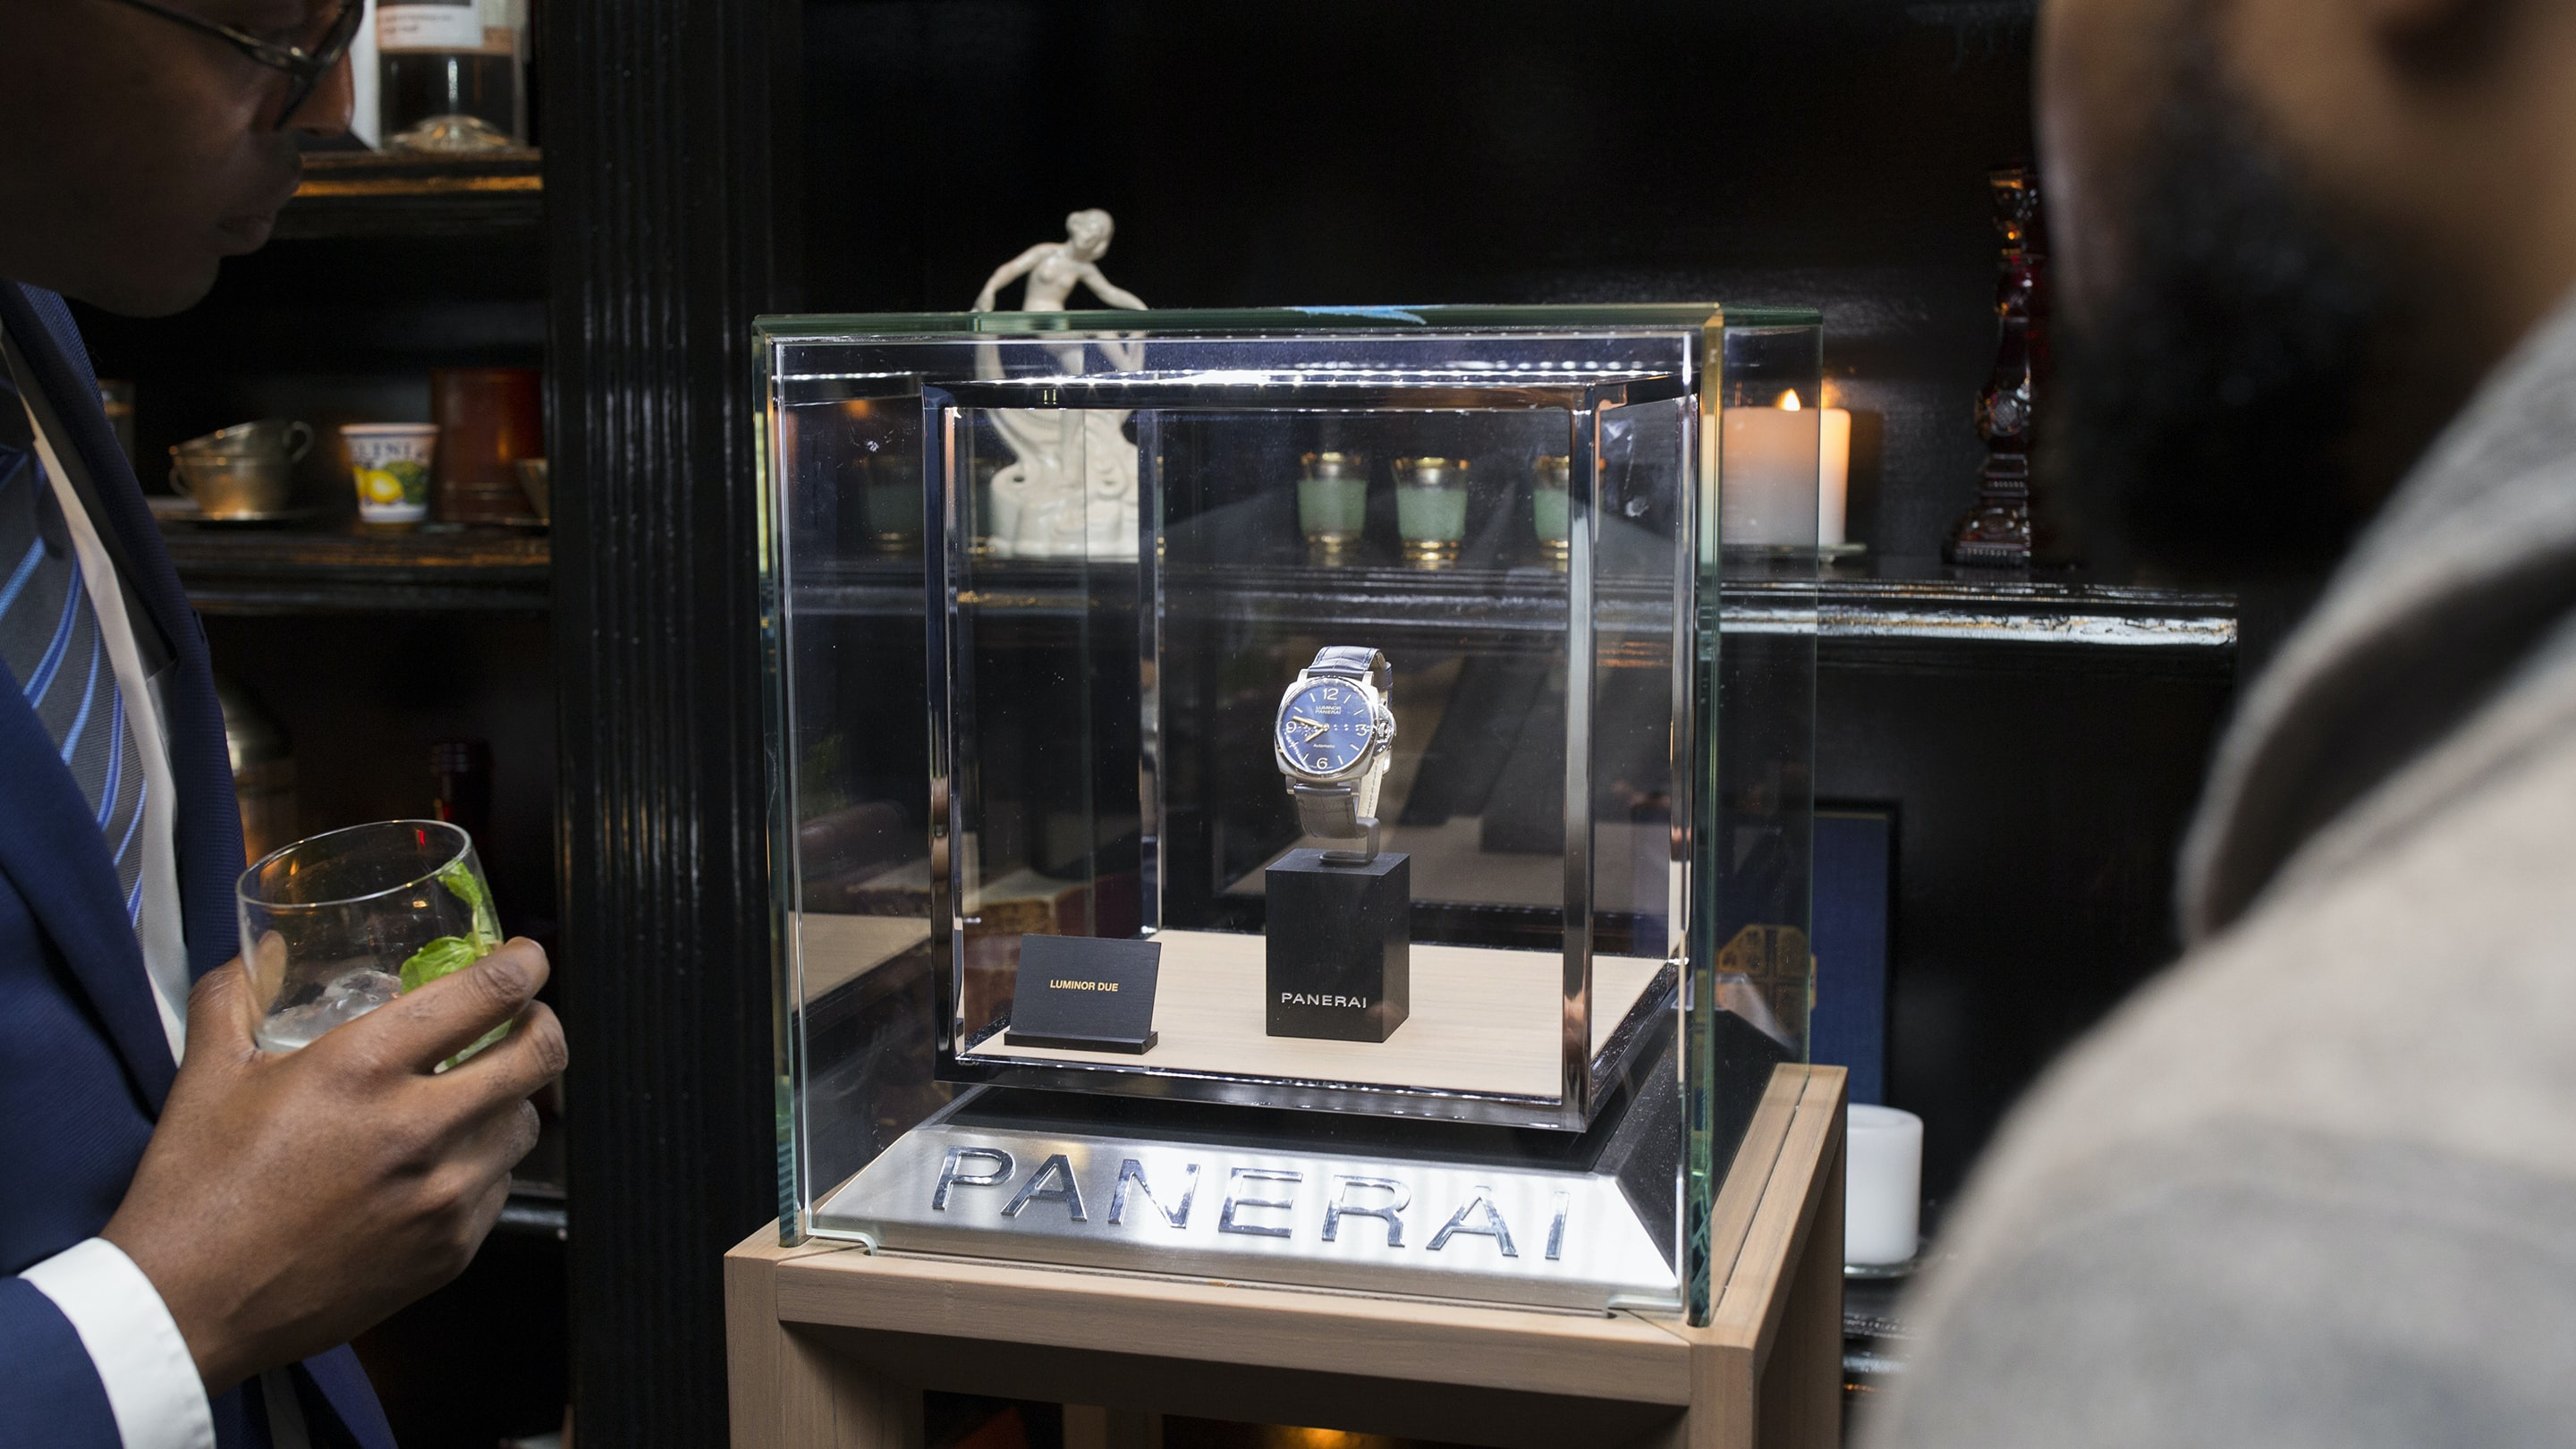 hero.jpg?ixlib=rails 1.1 Photo Report: Celebrating The Panerai Luminor Due Collection In New York Photo Report: Celebrating The Panerai Luminor Due Collection In New York  hero